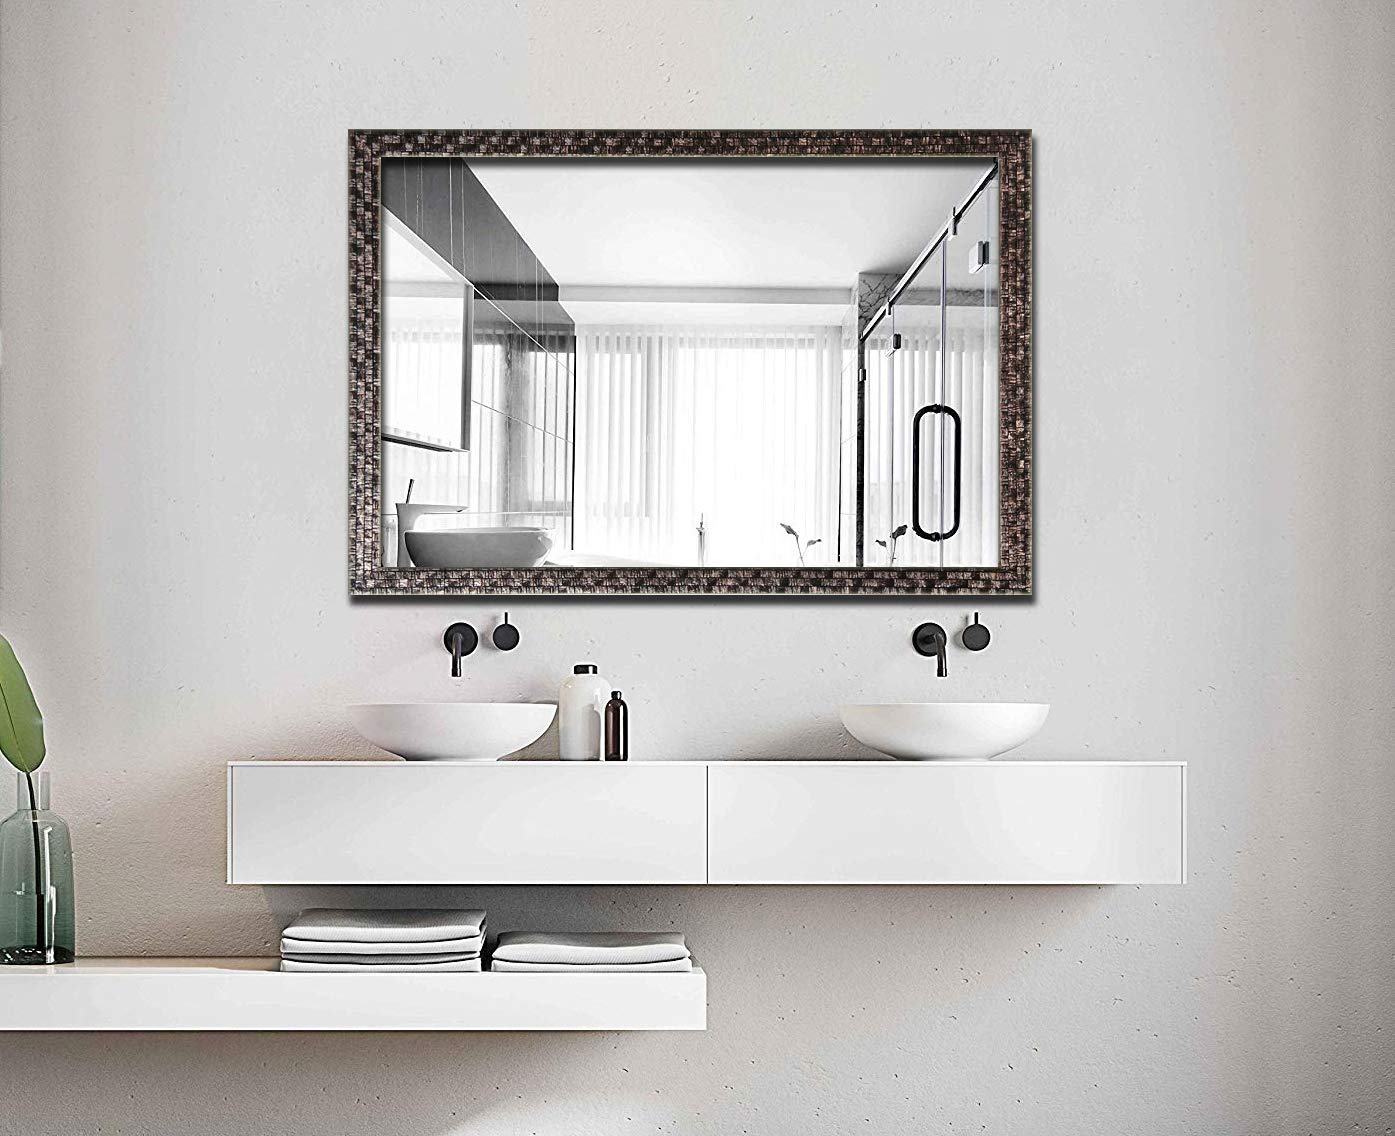 Hans Alice Large Rectangular Bathroom Mirror, Wall-Mounted Wooden Frame Vanity Mirror 38 x26 Gray-Black